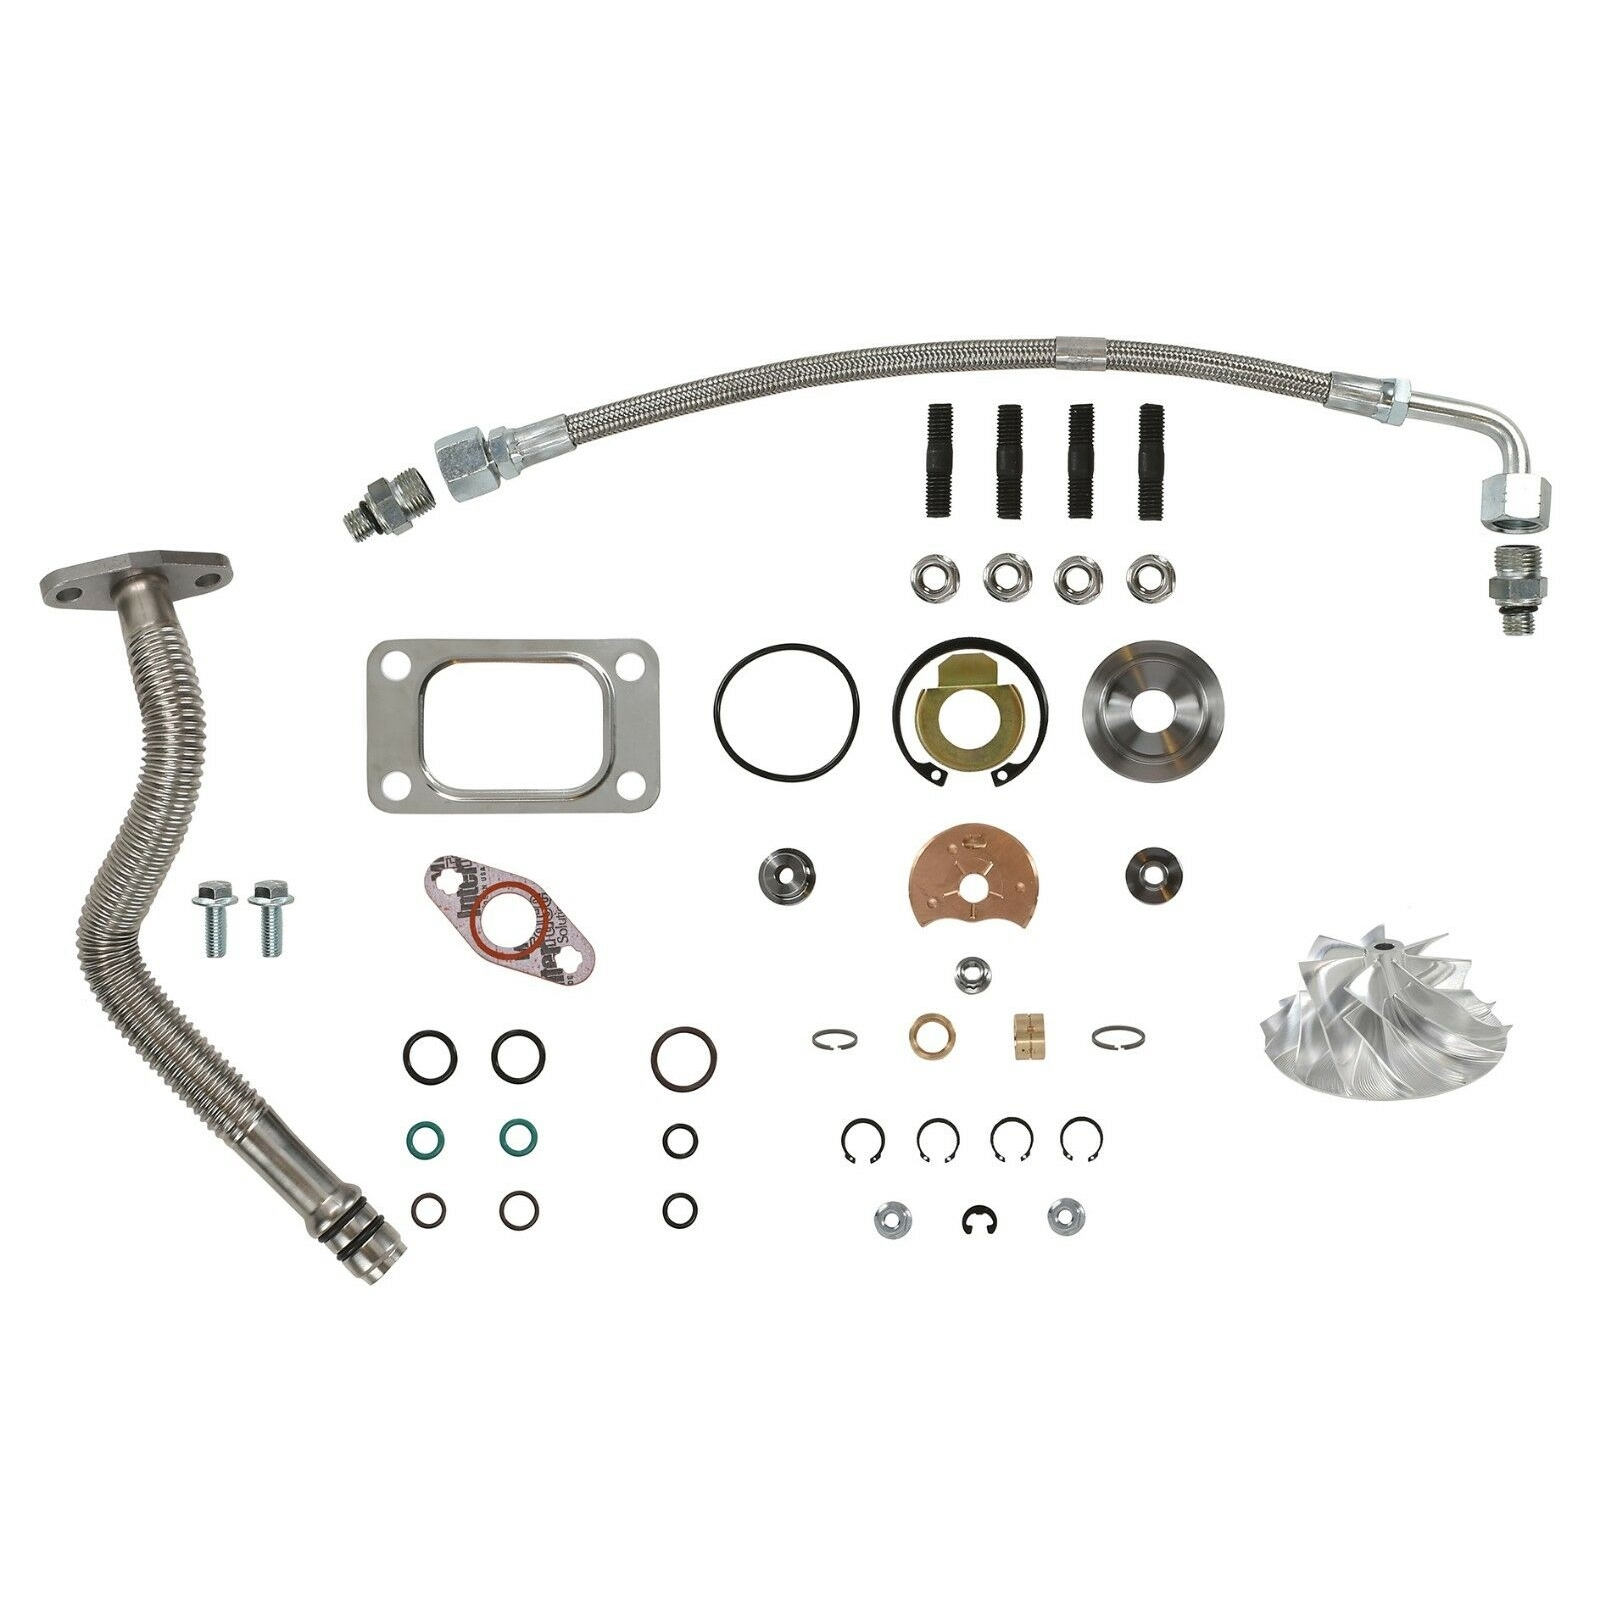 HE351CW Turbo Rebuild Kit Billet Wheel Oil Lines For 04.5-07 5.9L ISB Dodge Ram Cummins Diesel